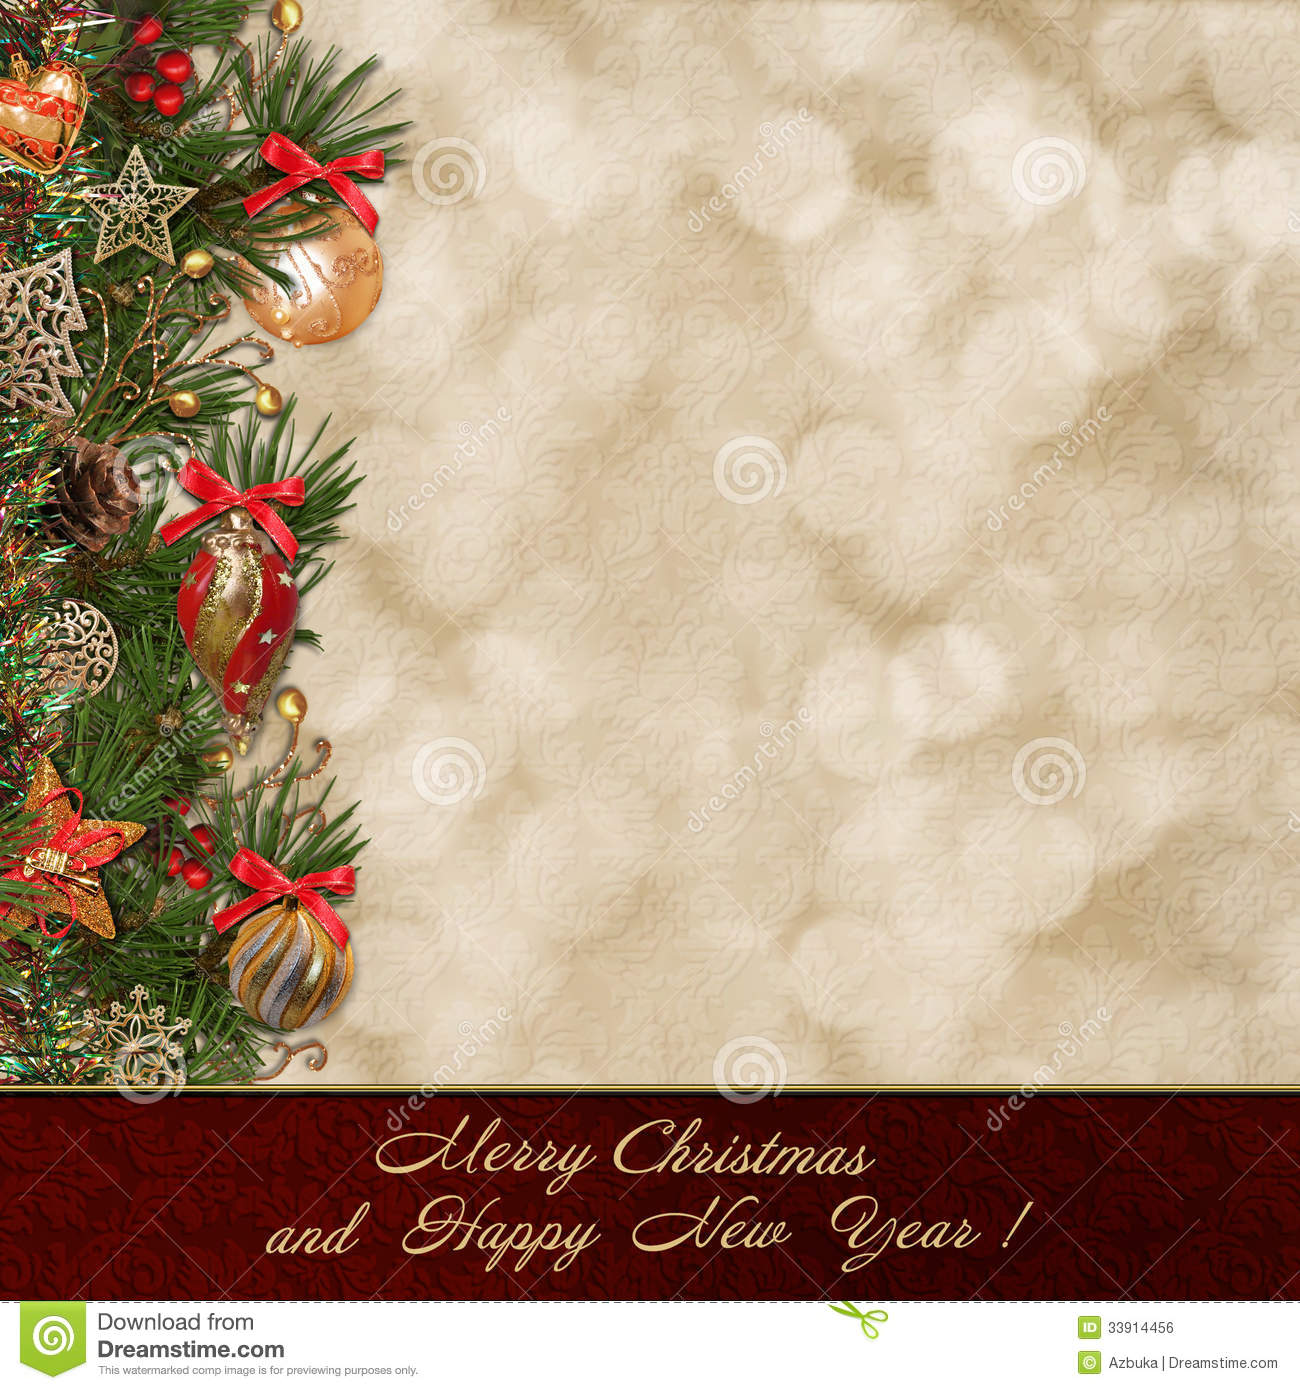 Christmas greeting background stock illustration illustration of christmas greeting background kristyandbryce Image collections